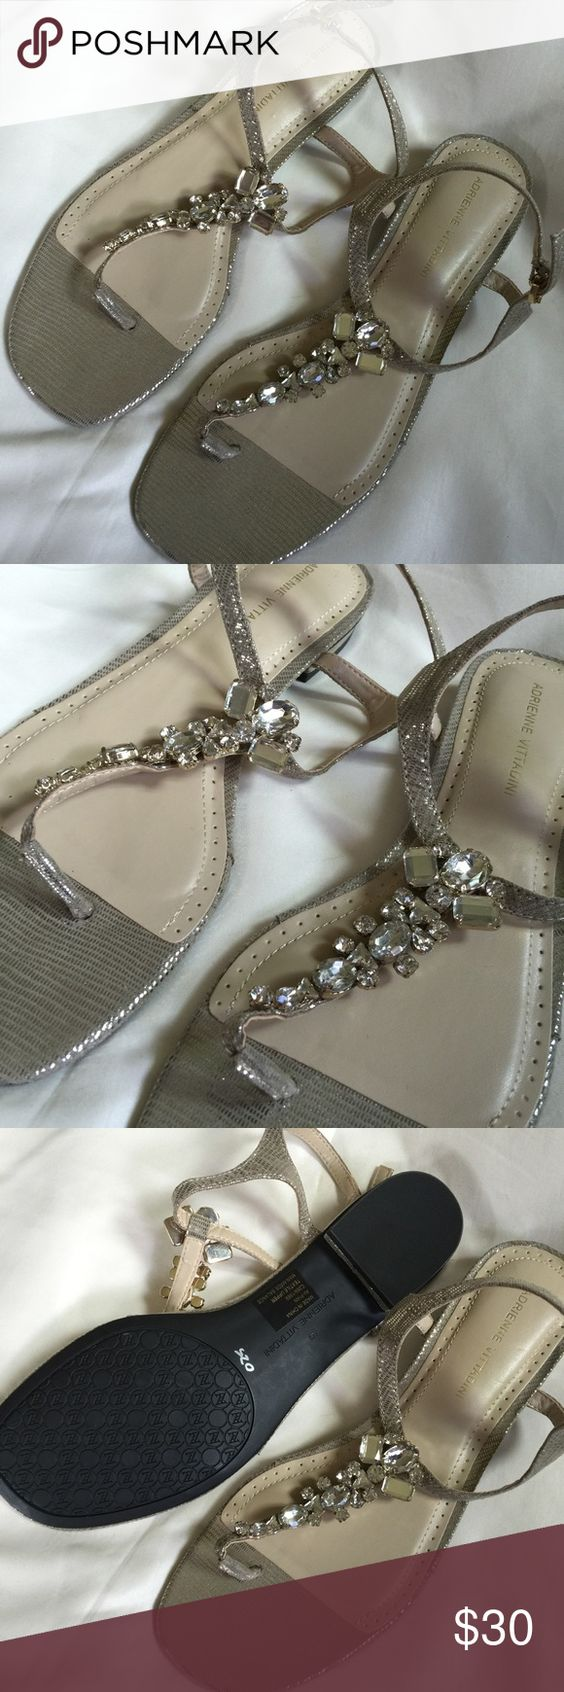 NEW ADRIENNE VITTADINI Silver Beaded Sandals Size9 NEW WITHOUT BOX! Never worn in great condition  very cute and stylish with beautiful beading. Adrienne Vittadini Shoes Sandals